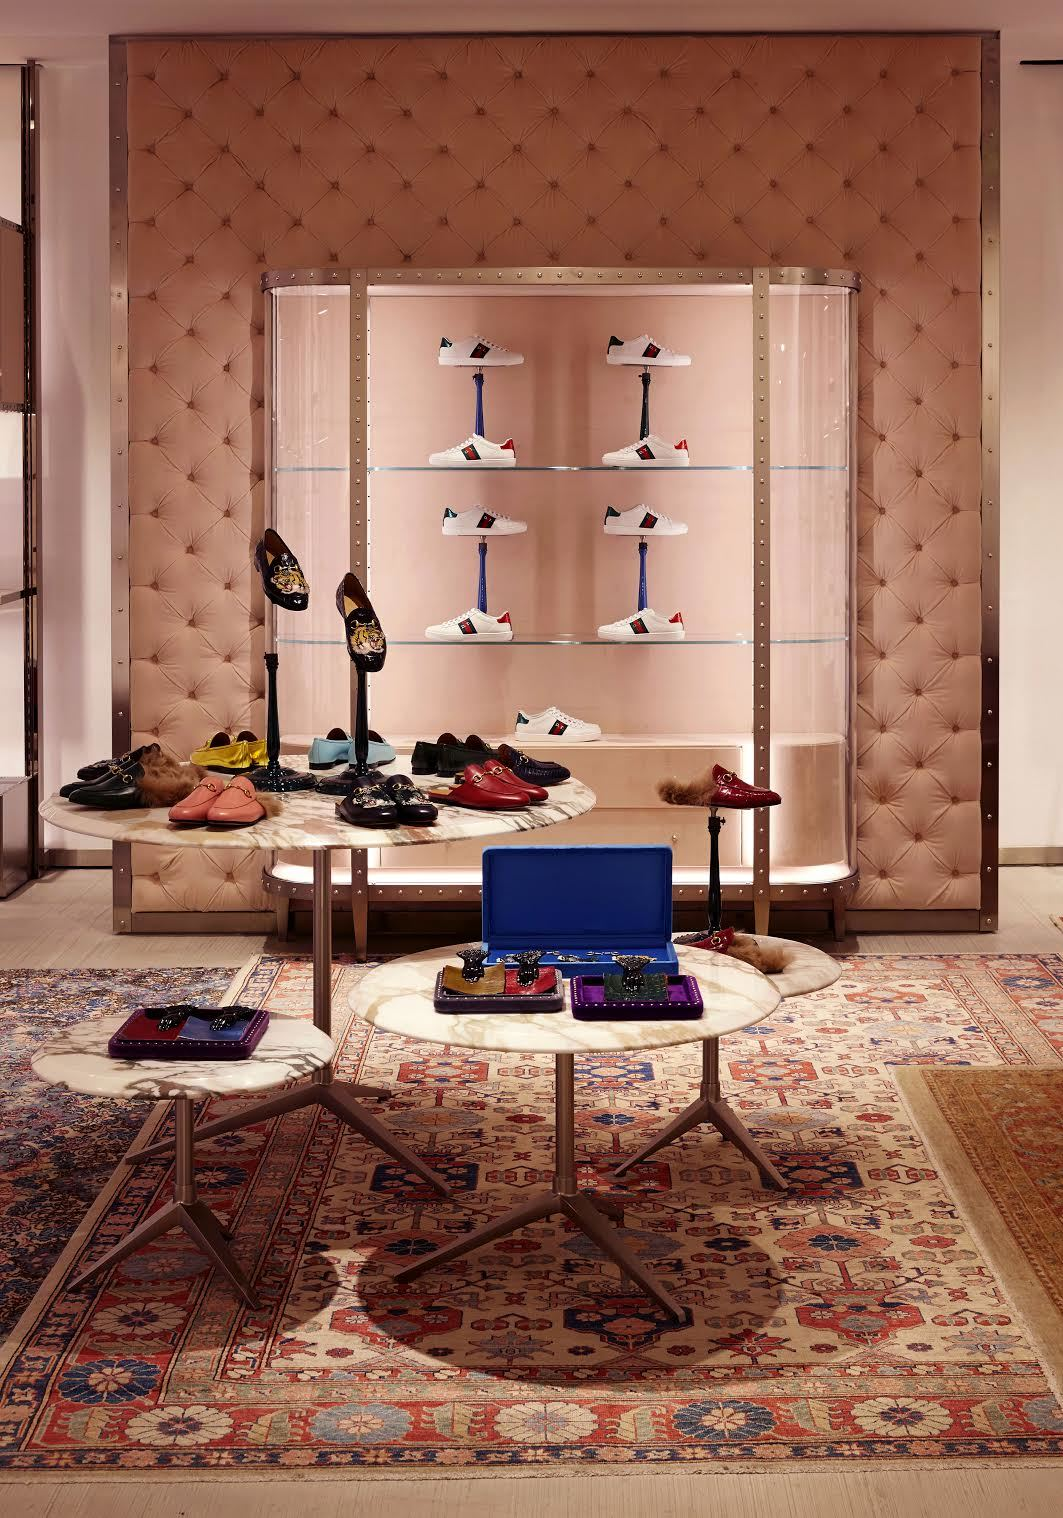 7c4c4648f1 Charitybuzz: Personal Appointment at Gucci's Old Bond Street ...